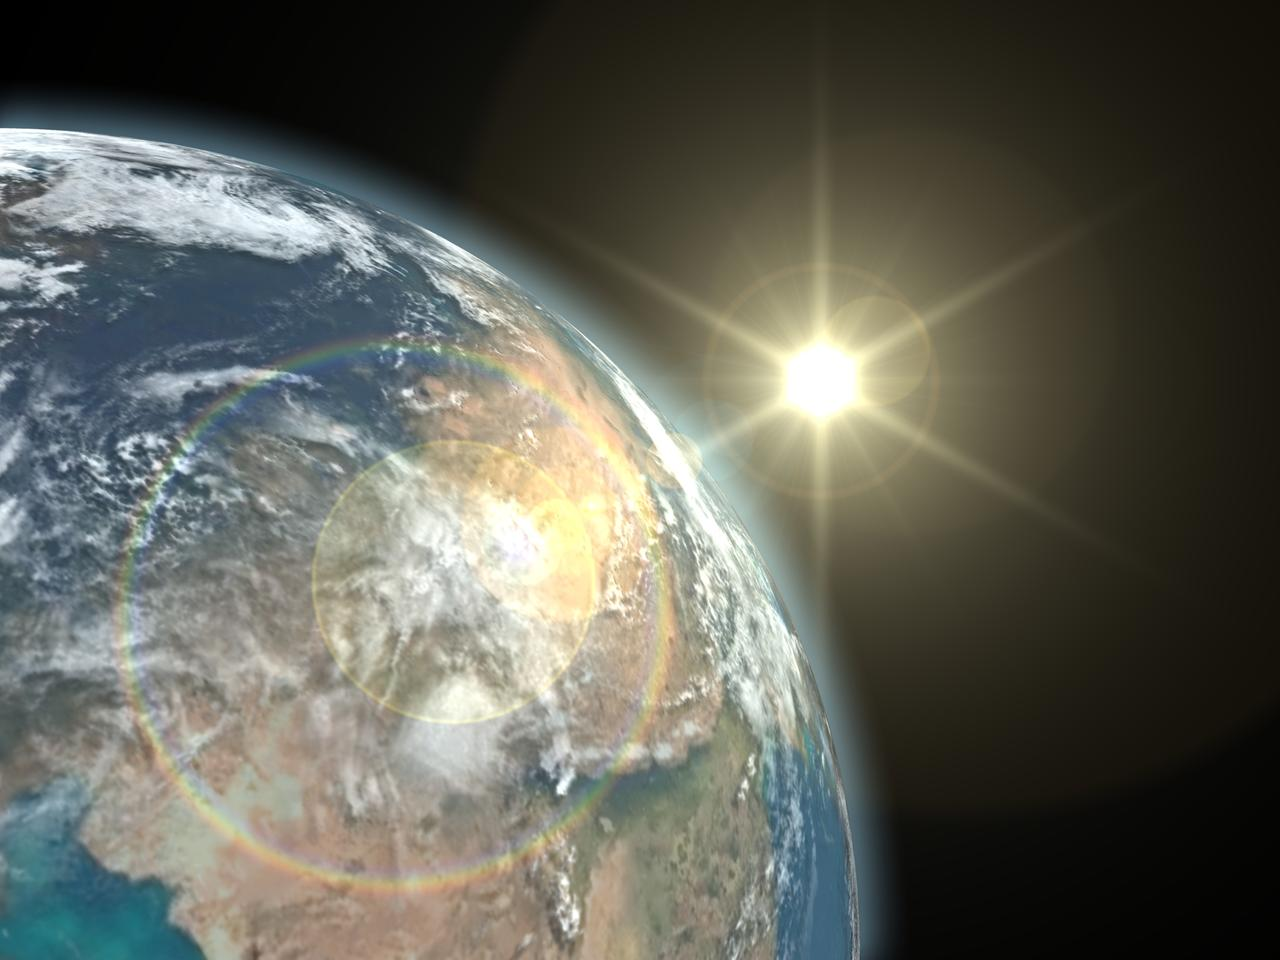 The ultimate goal of the project is to relay power from orbit thousands of miles above Earth (Image: Shutterstock)